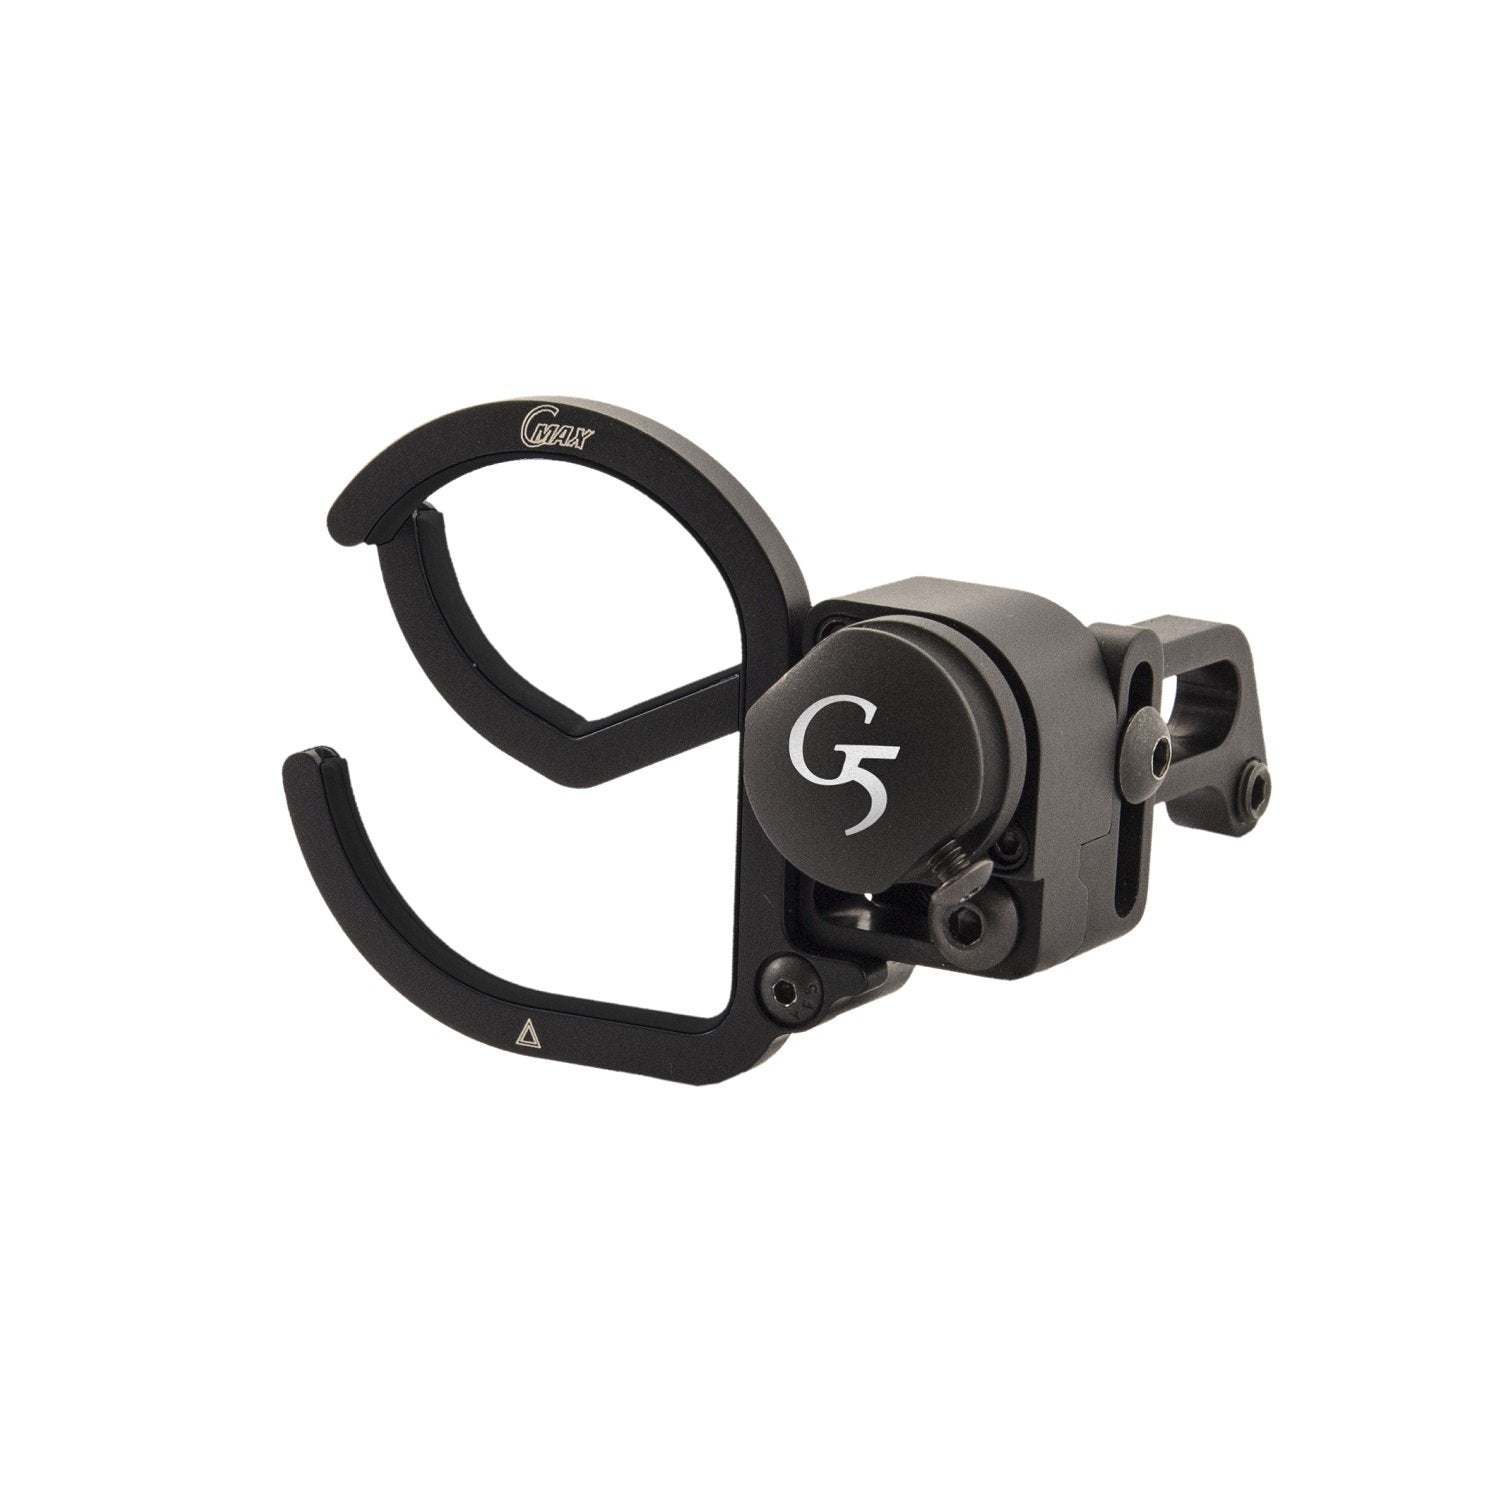 G5 CMAX Arrow Rest Right Hand Black